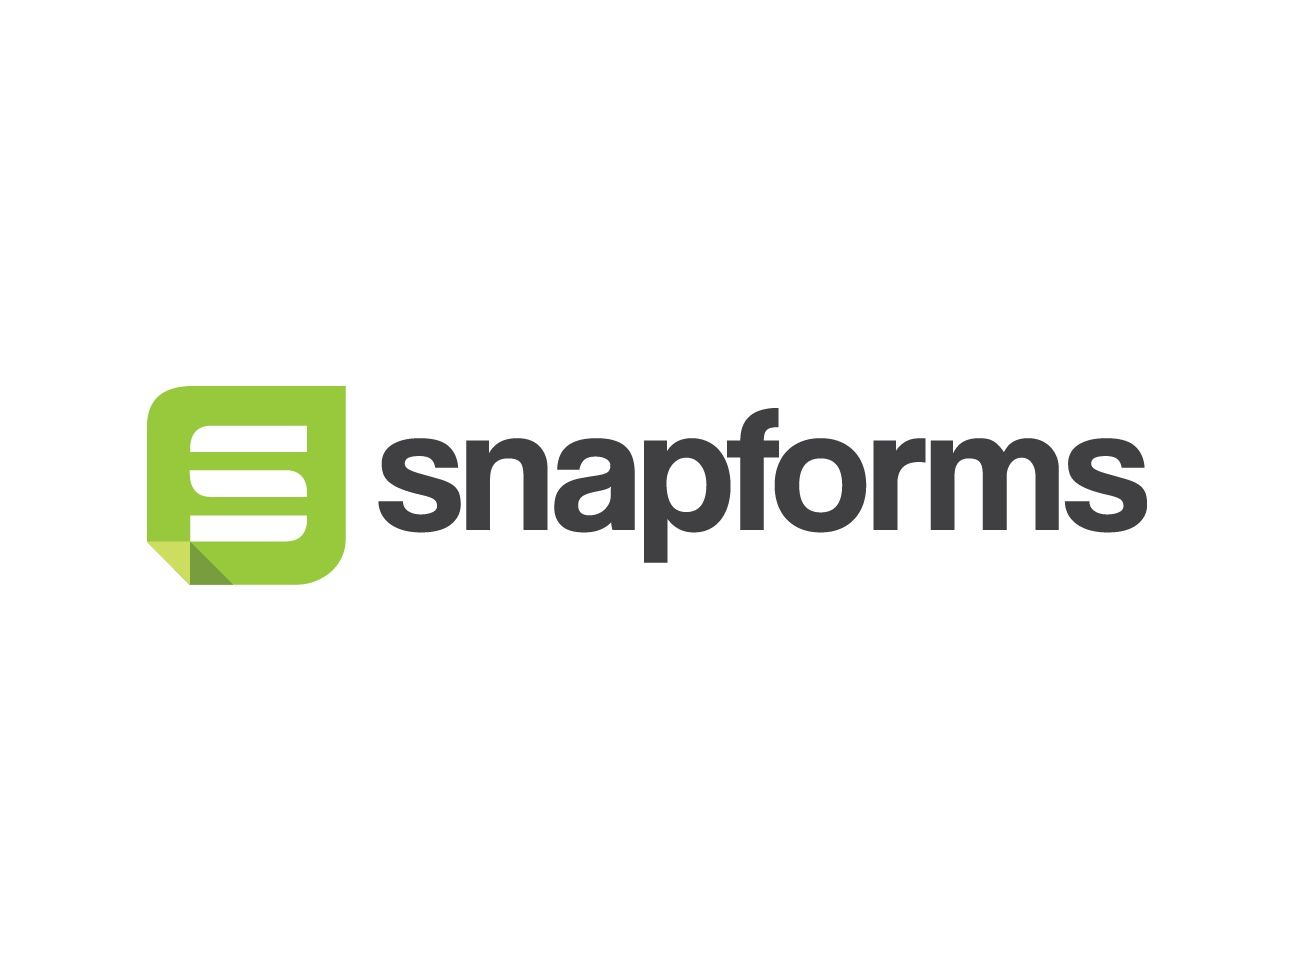 Snapforms Logo